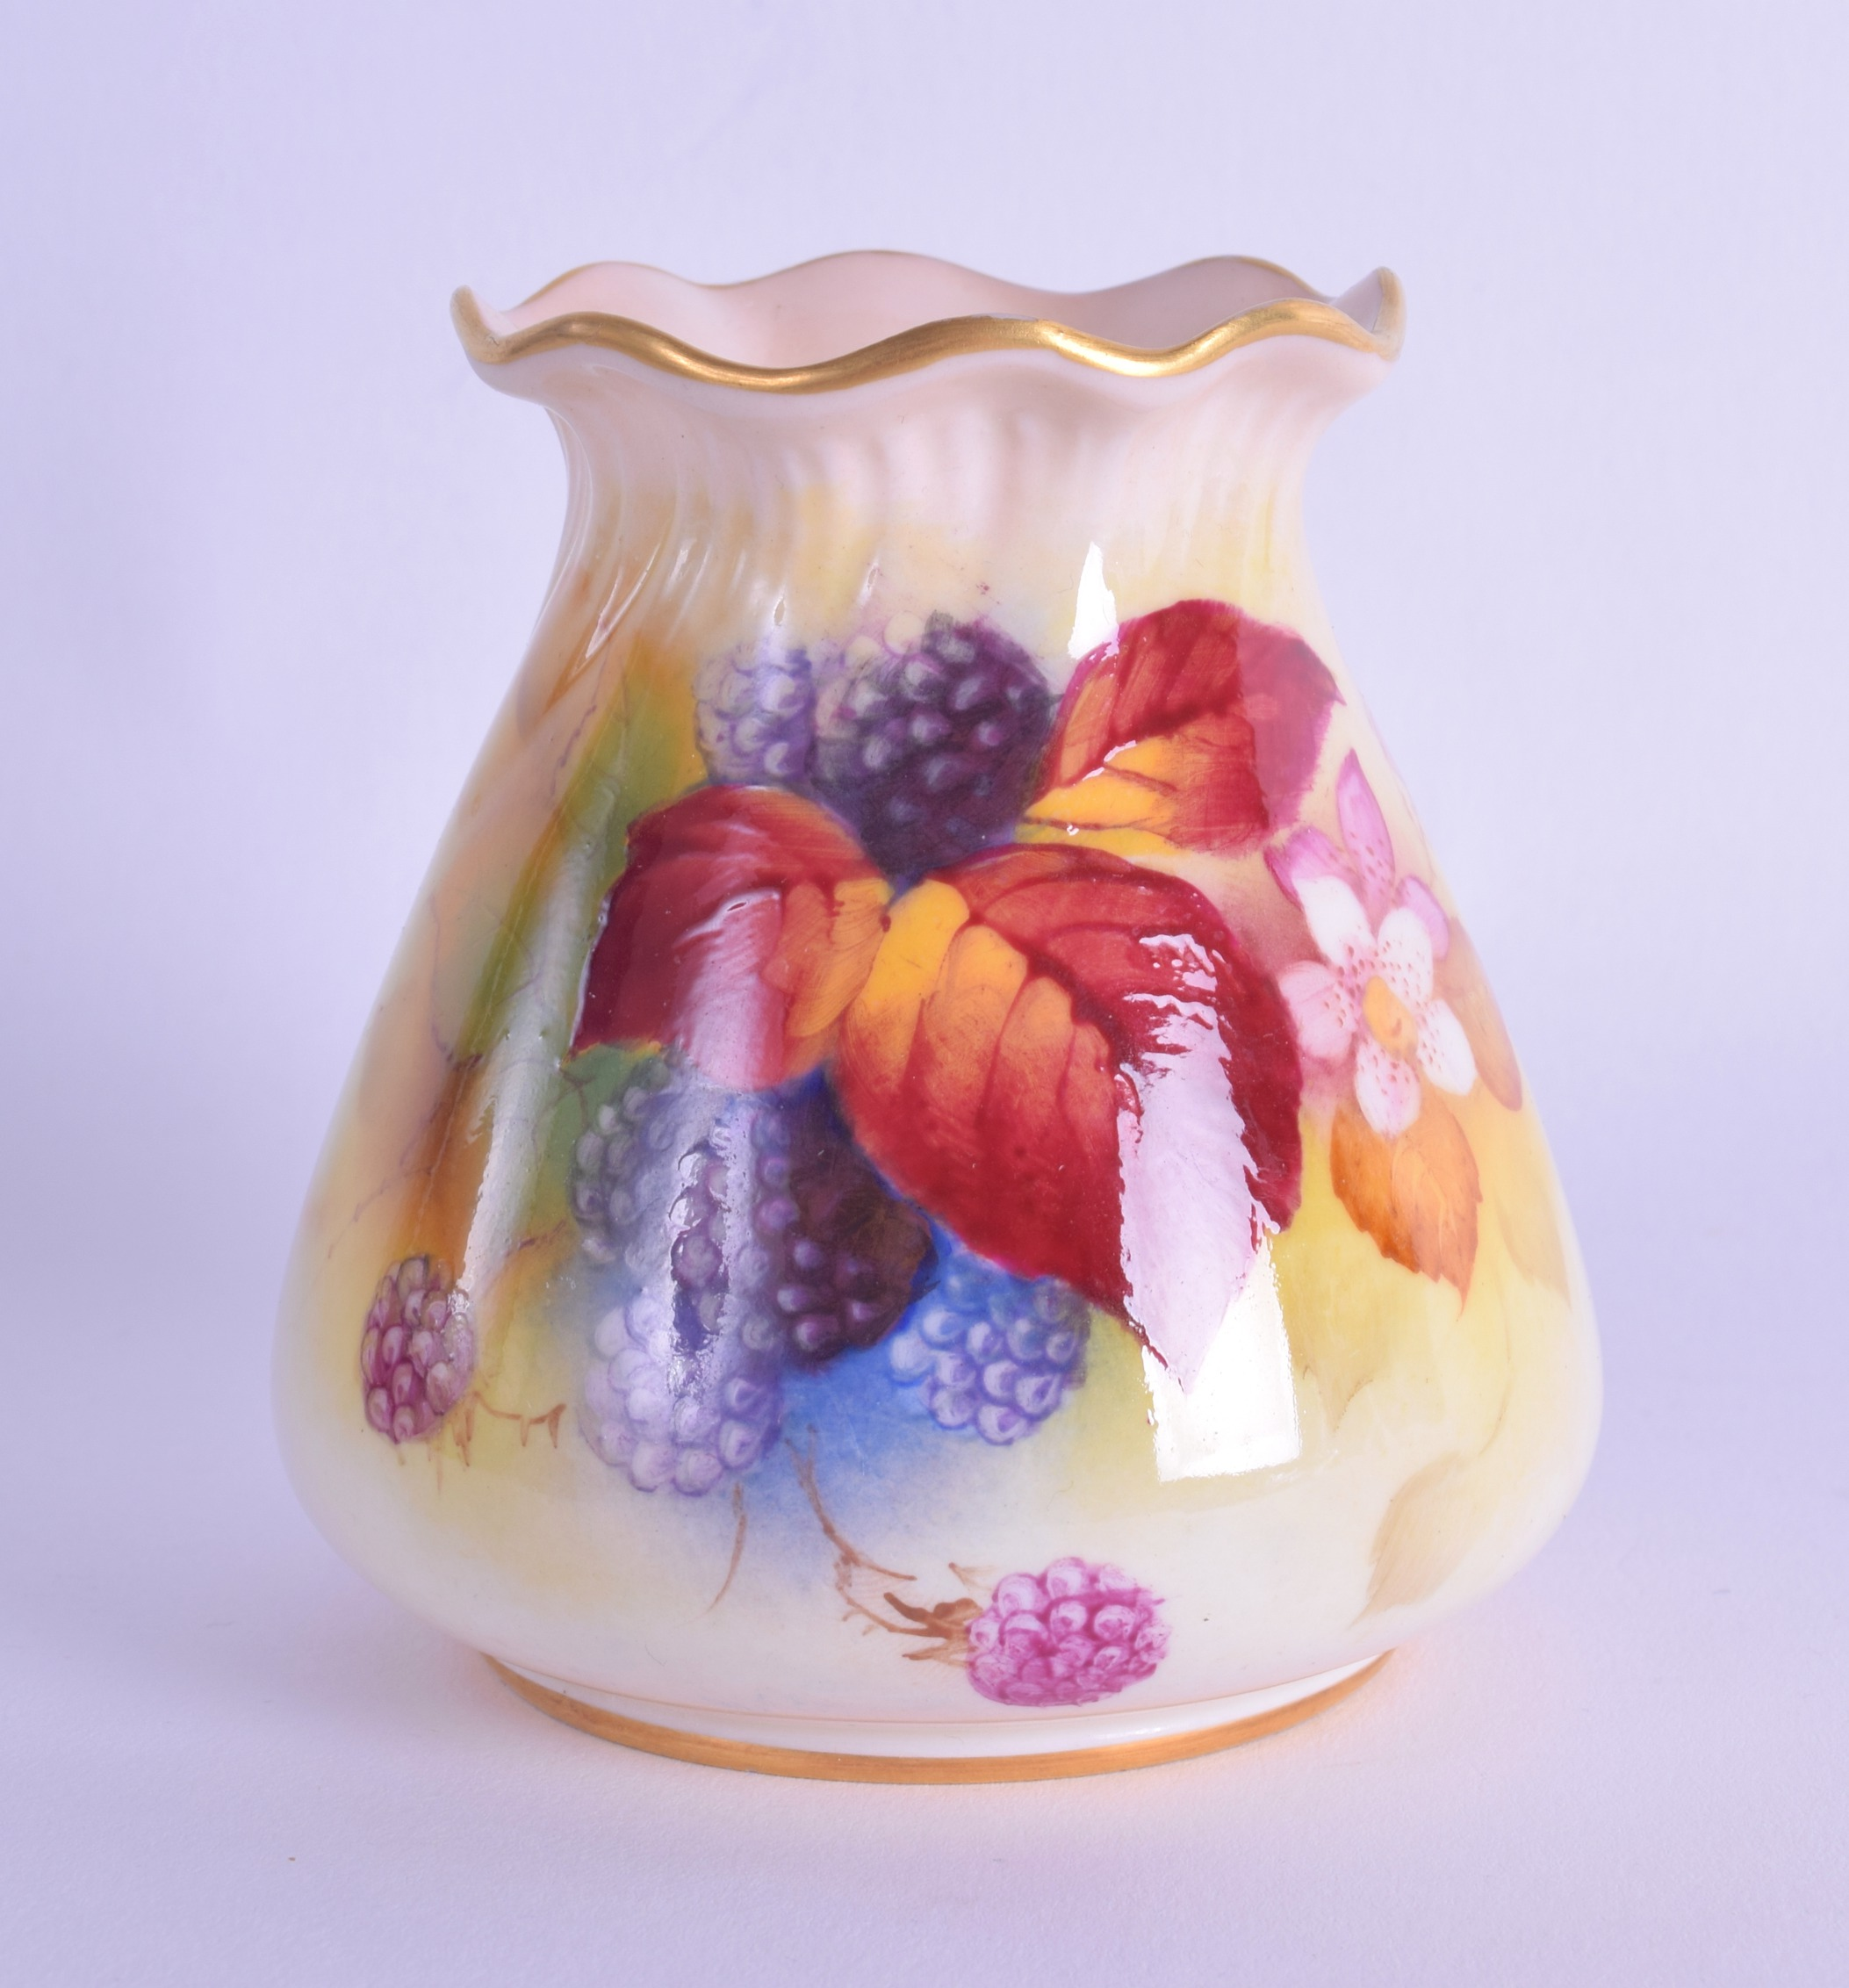 Lot 156 - Royal Worcester vase with pie crust rim painted with autumnal leaves and berries by Kitty Blake